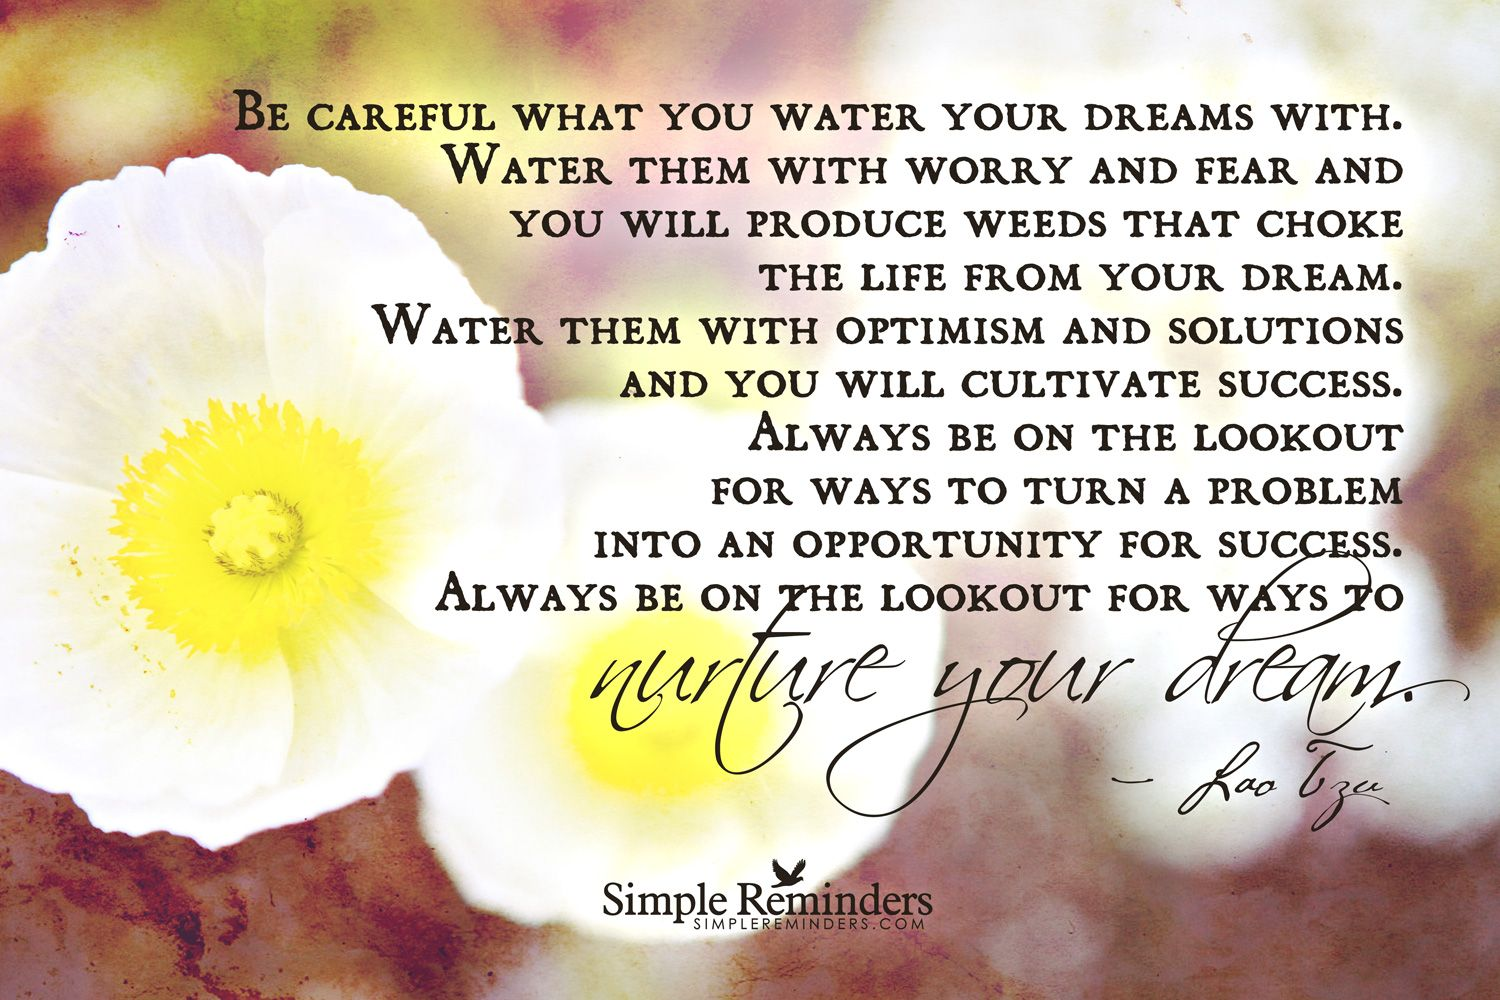 """Be careful what you water your dreams with. Water them with worry and fear and you will produce weeds that choke the life from your dream. Water them with optimism and solutions and you will cultivate success. Always be on the lookout for ways to turn a problem into an opportunity for success. Always be on the lookout for ways to nurture your dream."""